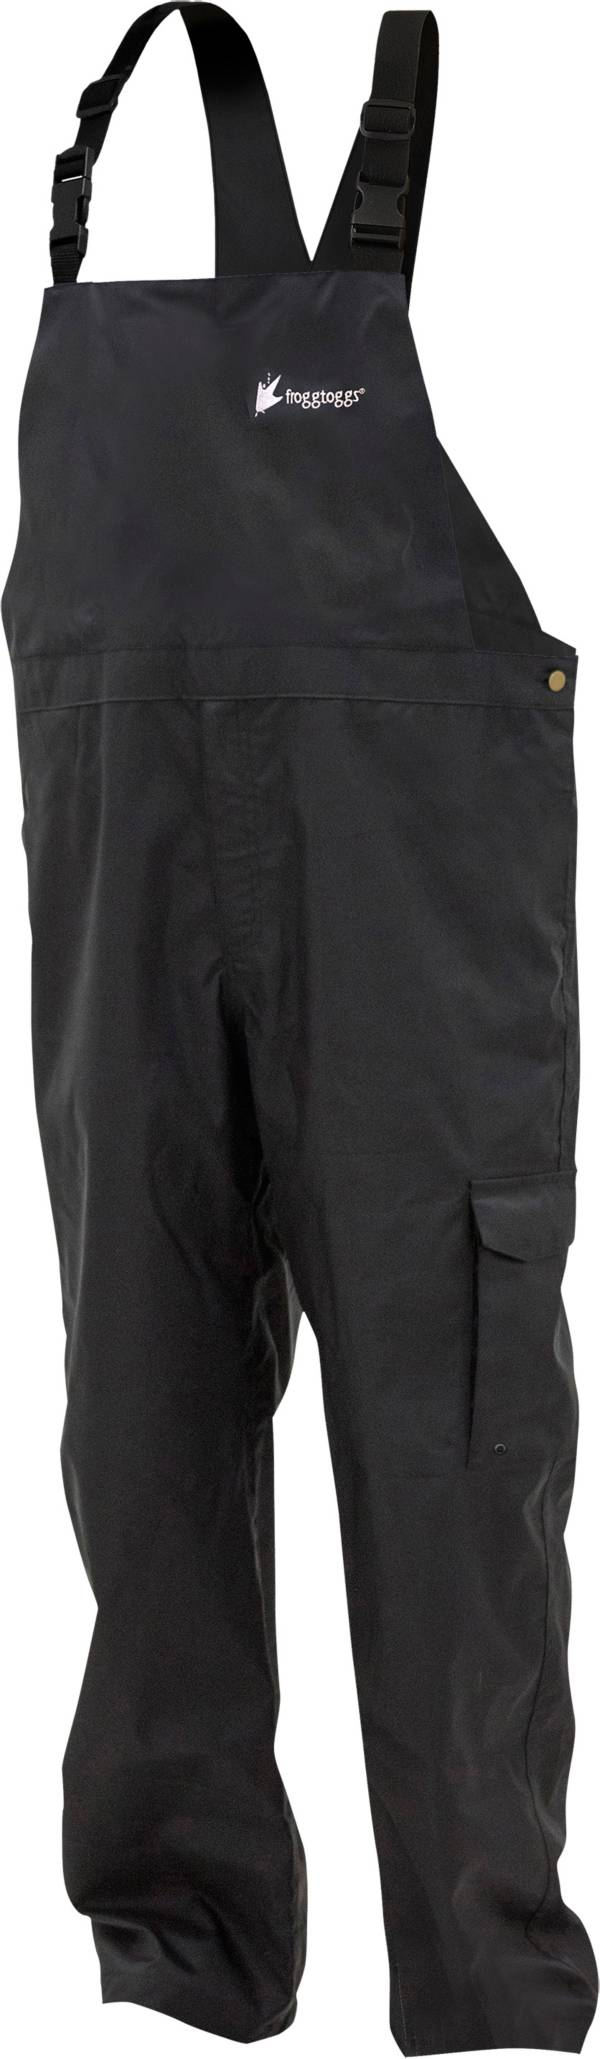 frogg toggs Men's StormWatch Bibs product image